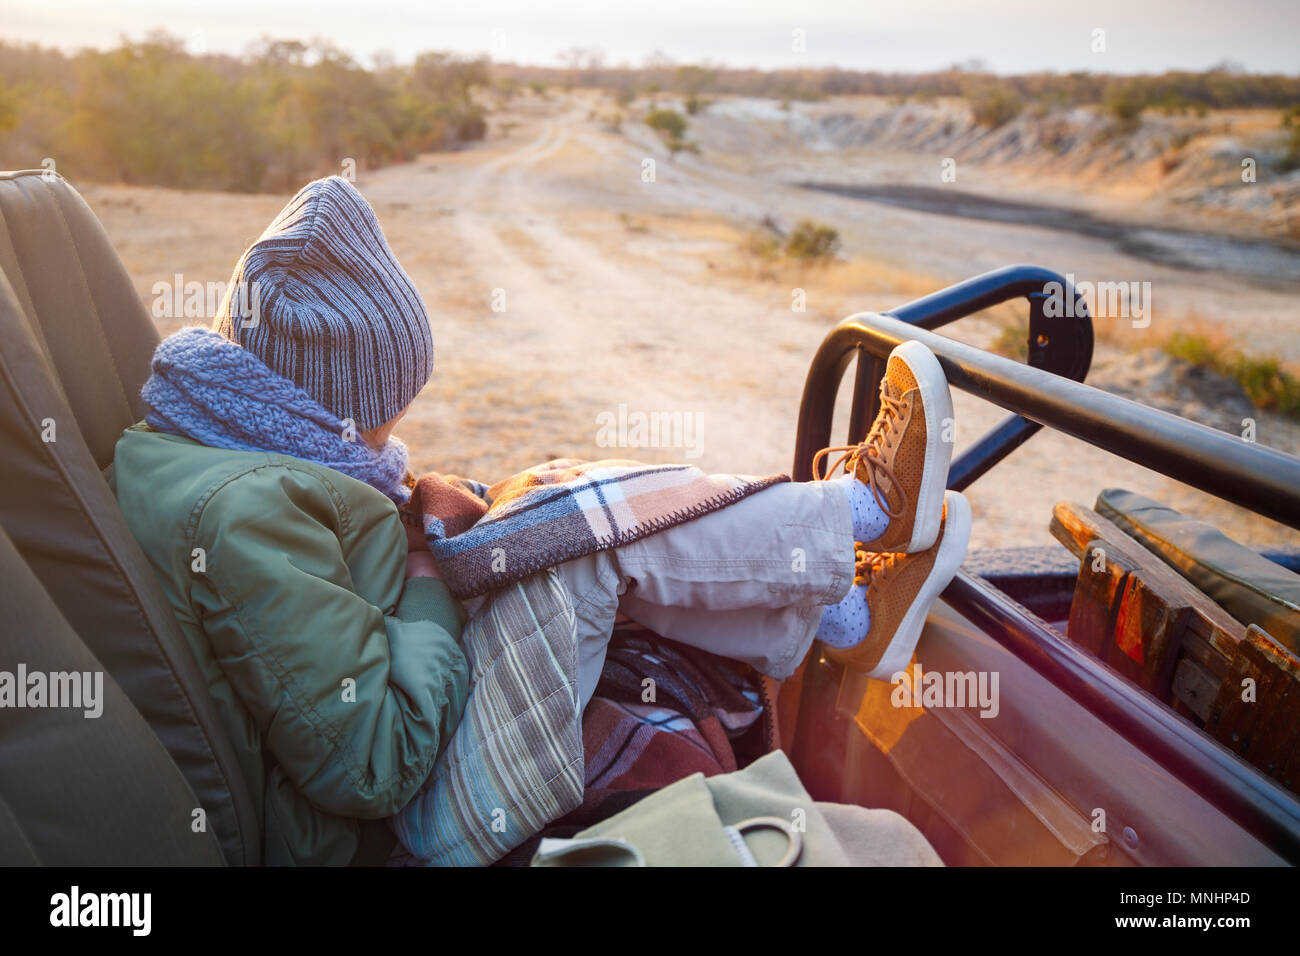 Adorable little girl wearing warm clothes outdoors on beautiful winter morning safari game drive - Stock Image